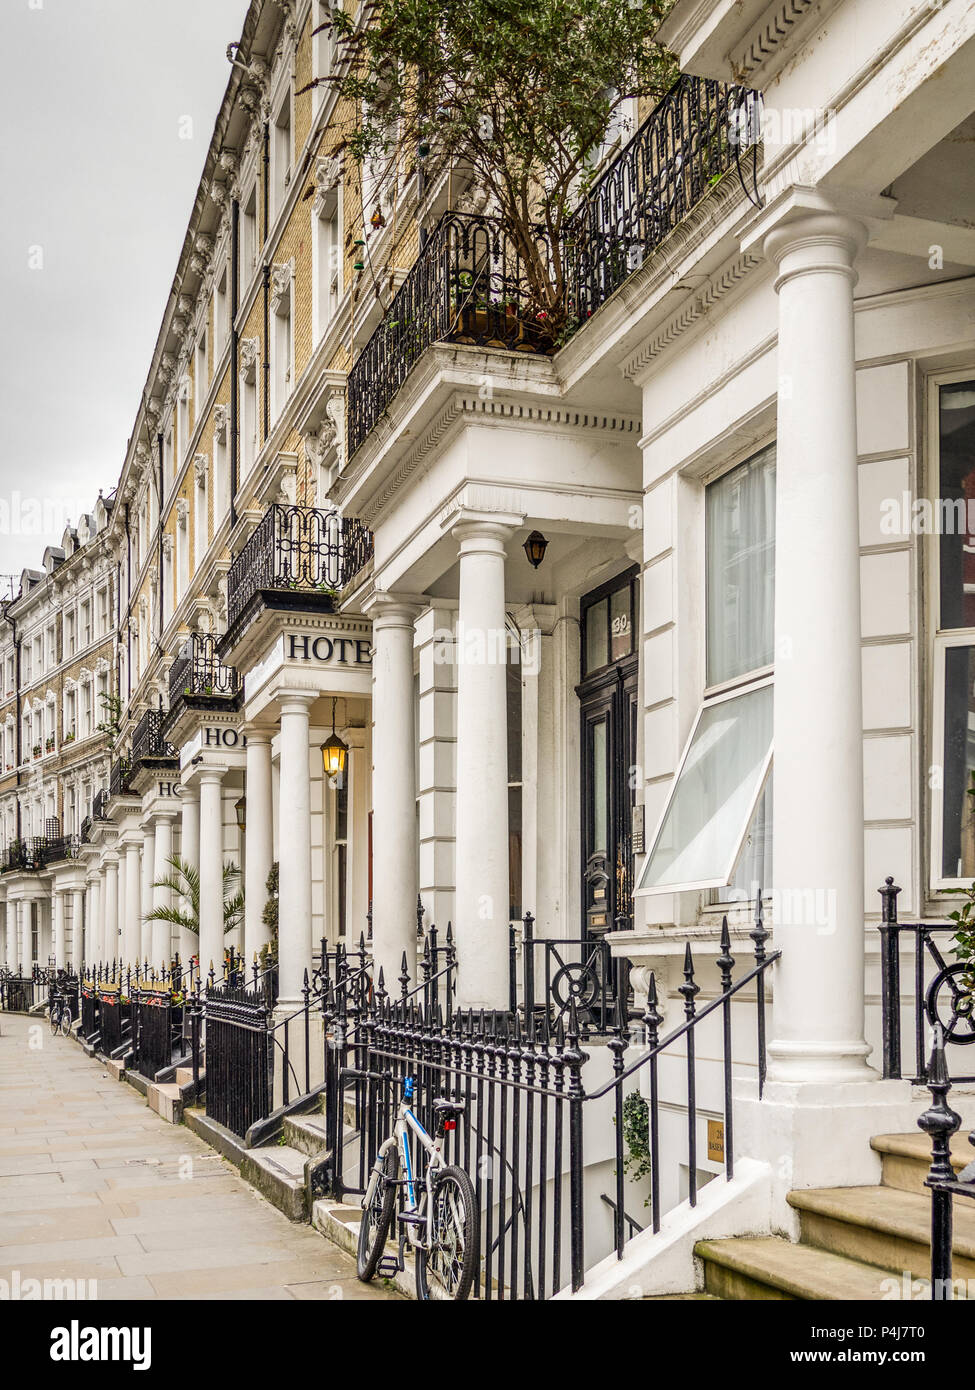 Hotel townhouses in Kensington, London, England, UK> - Stock Image